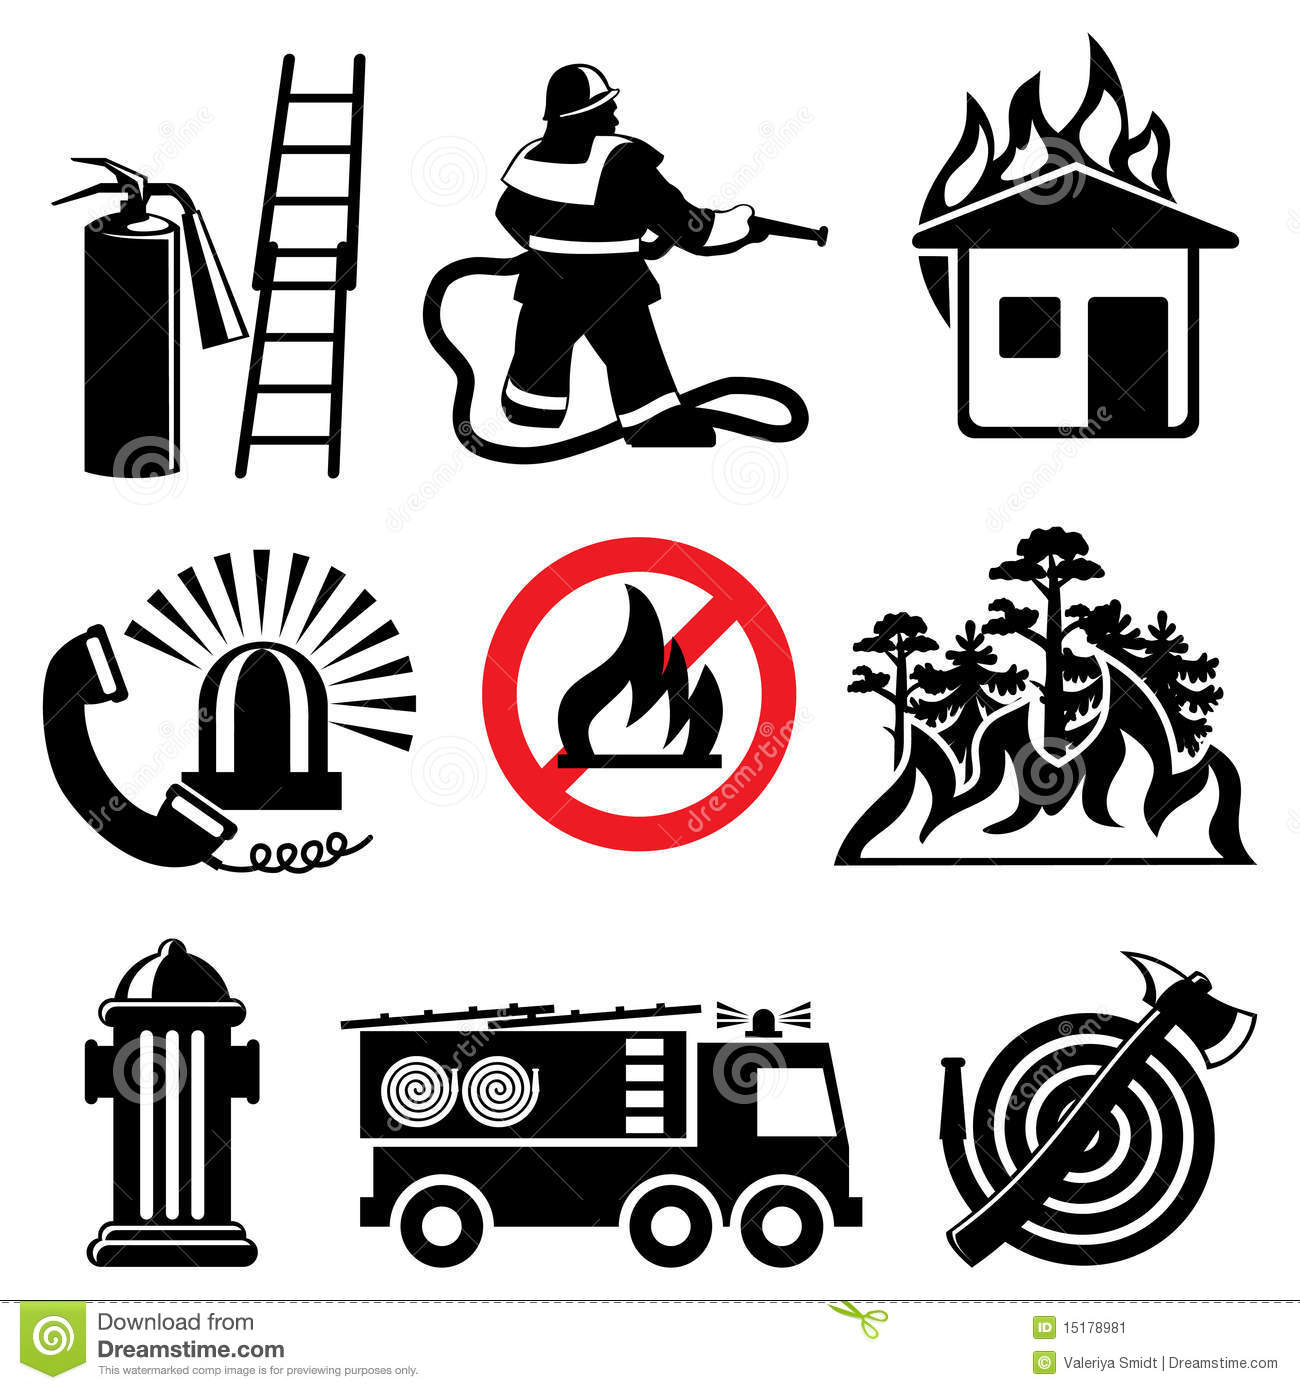 Fire safety icons stock vector. Illustration of tank